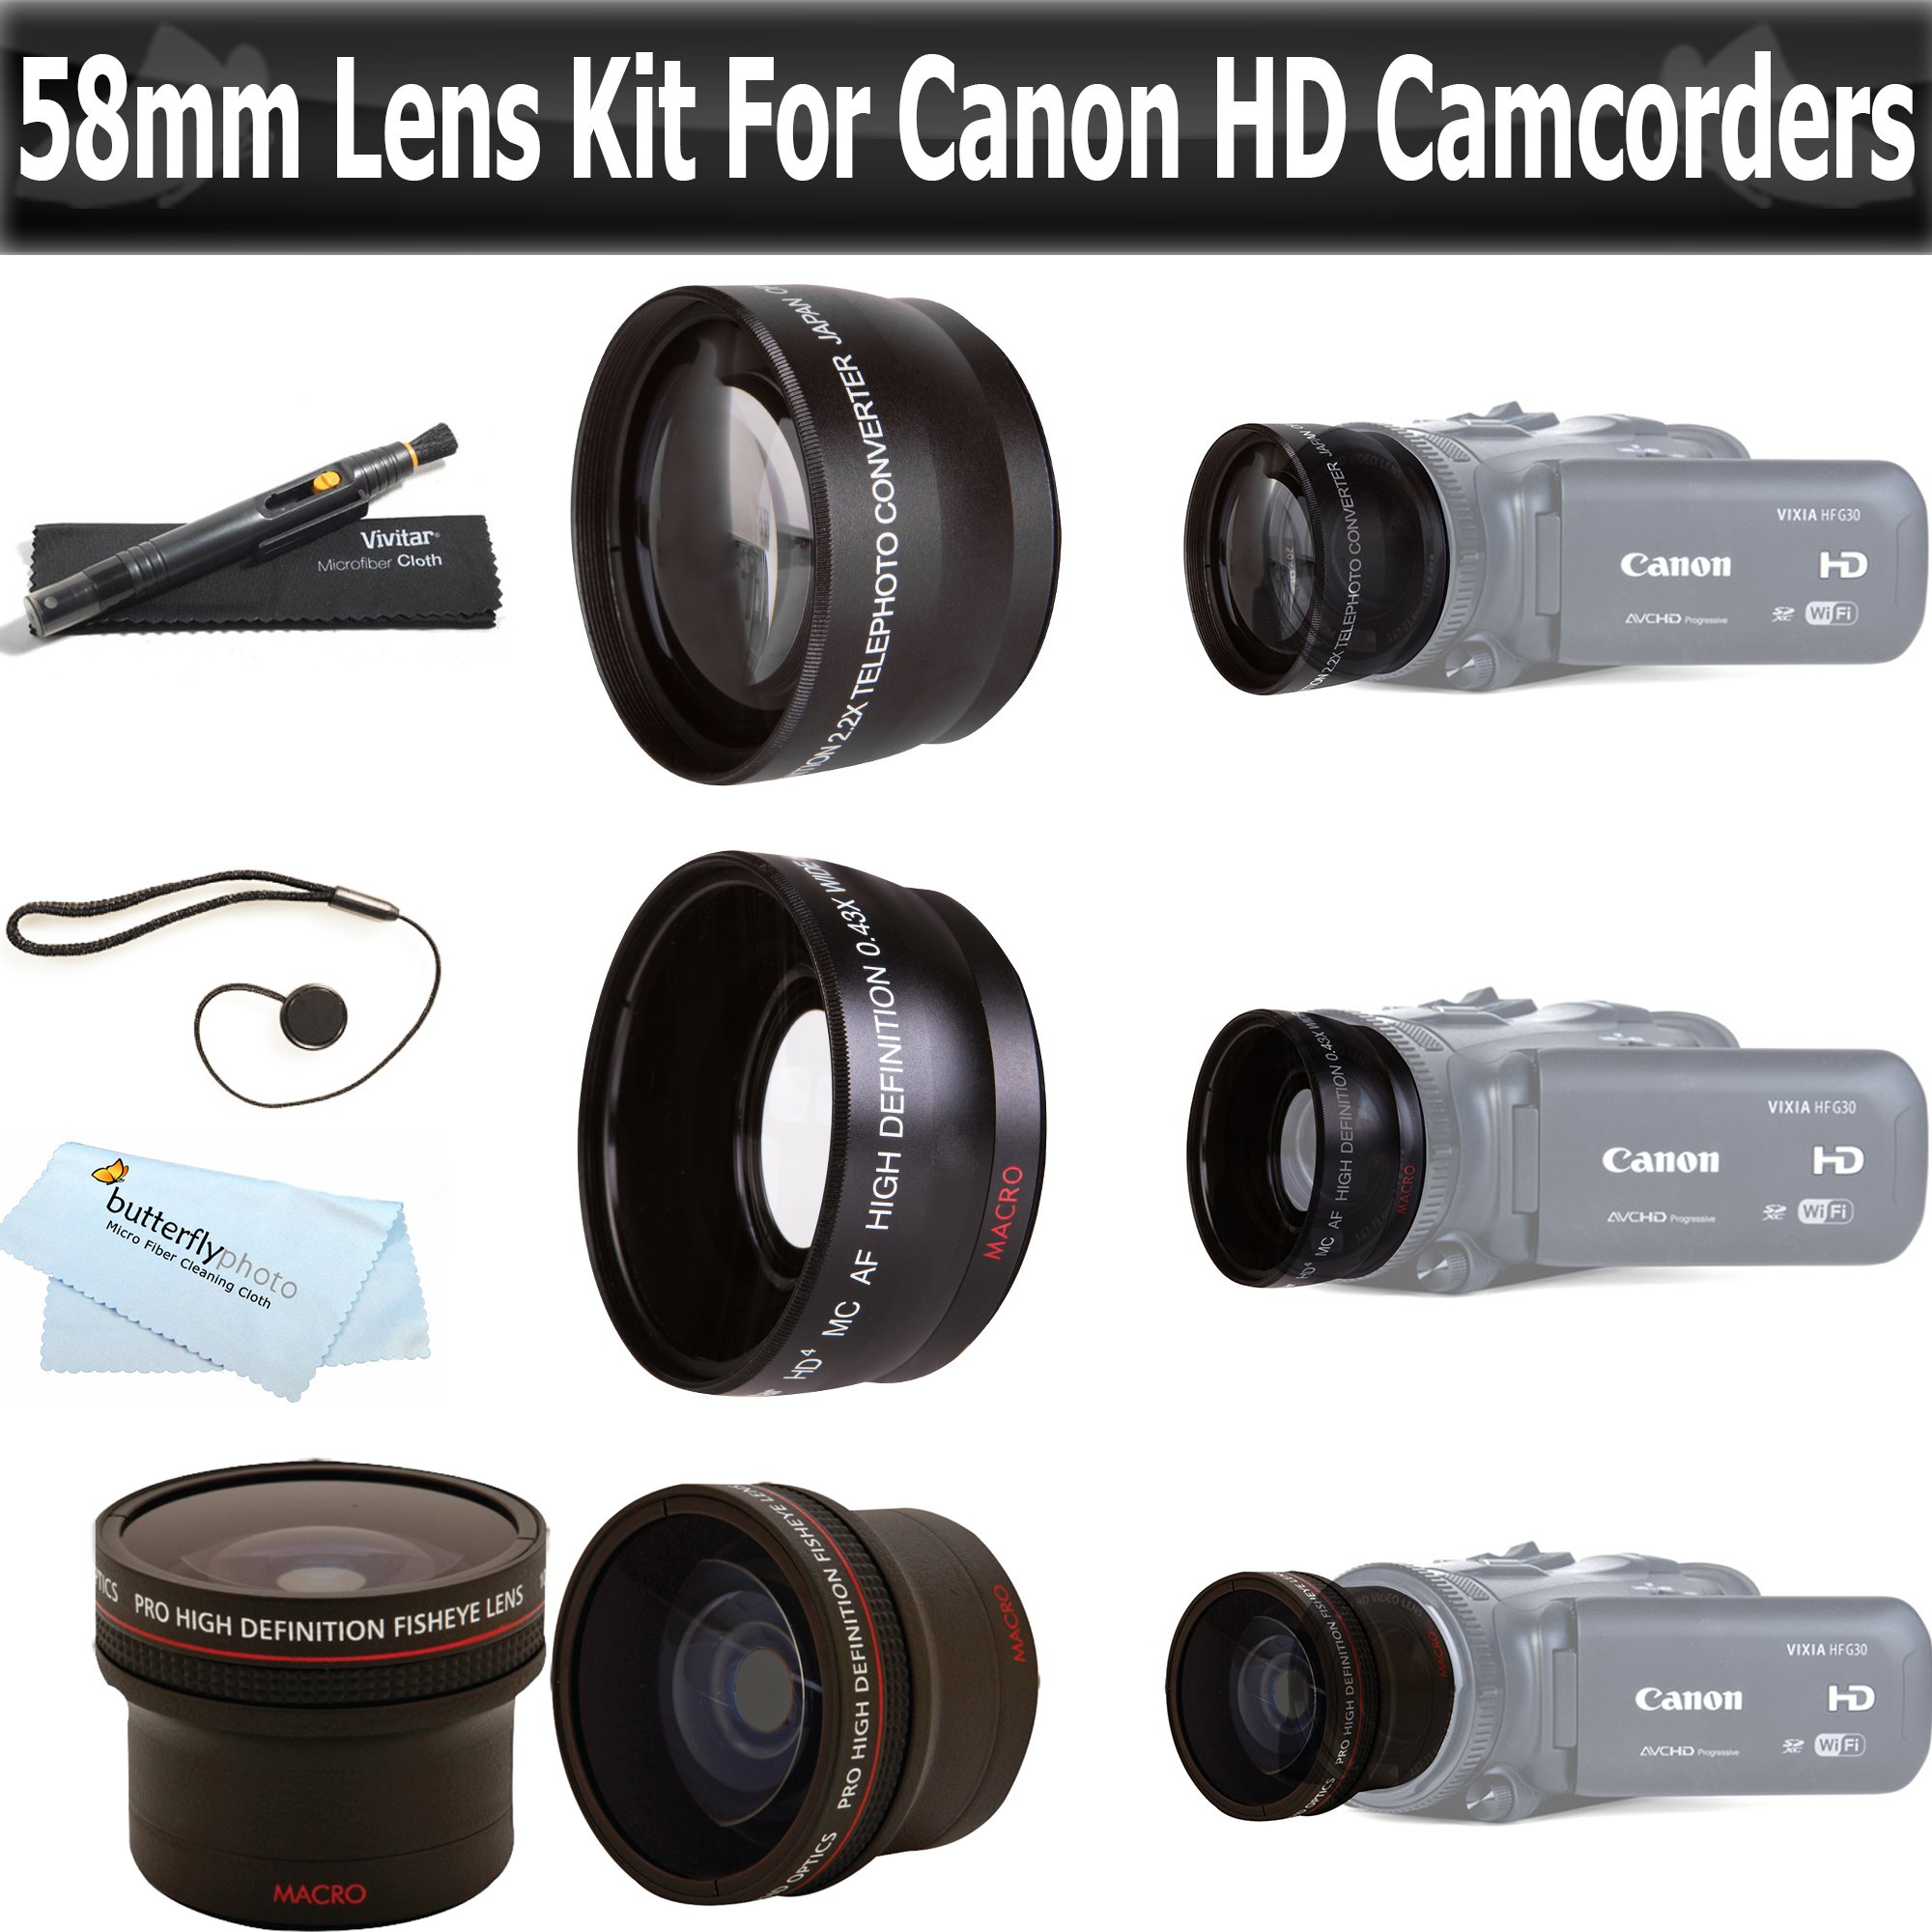 ButterflyPhoto Essentials Lens Kit For Canon Vixia HF G20, HF G30, HF G40 HD Camcorder Includes .16x HD Super Wide Fisheye Lens + 2x Telephoto HD Lens + .45x Wide Angle Macro HD Lens + More by ButterflyPhoto